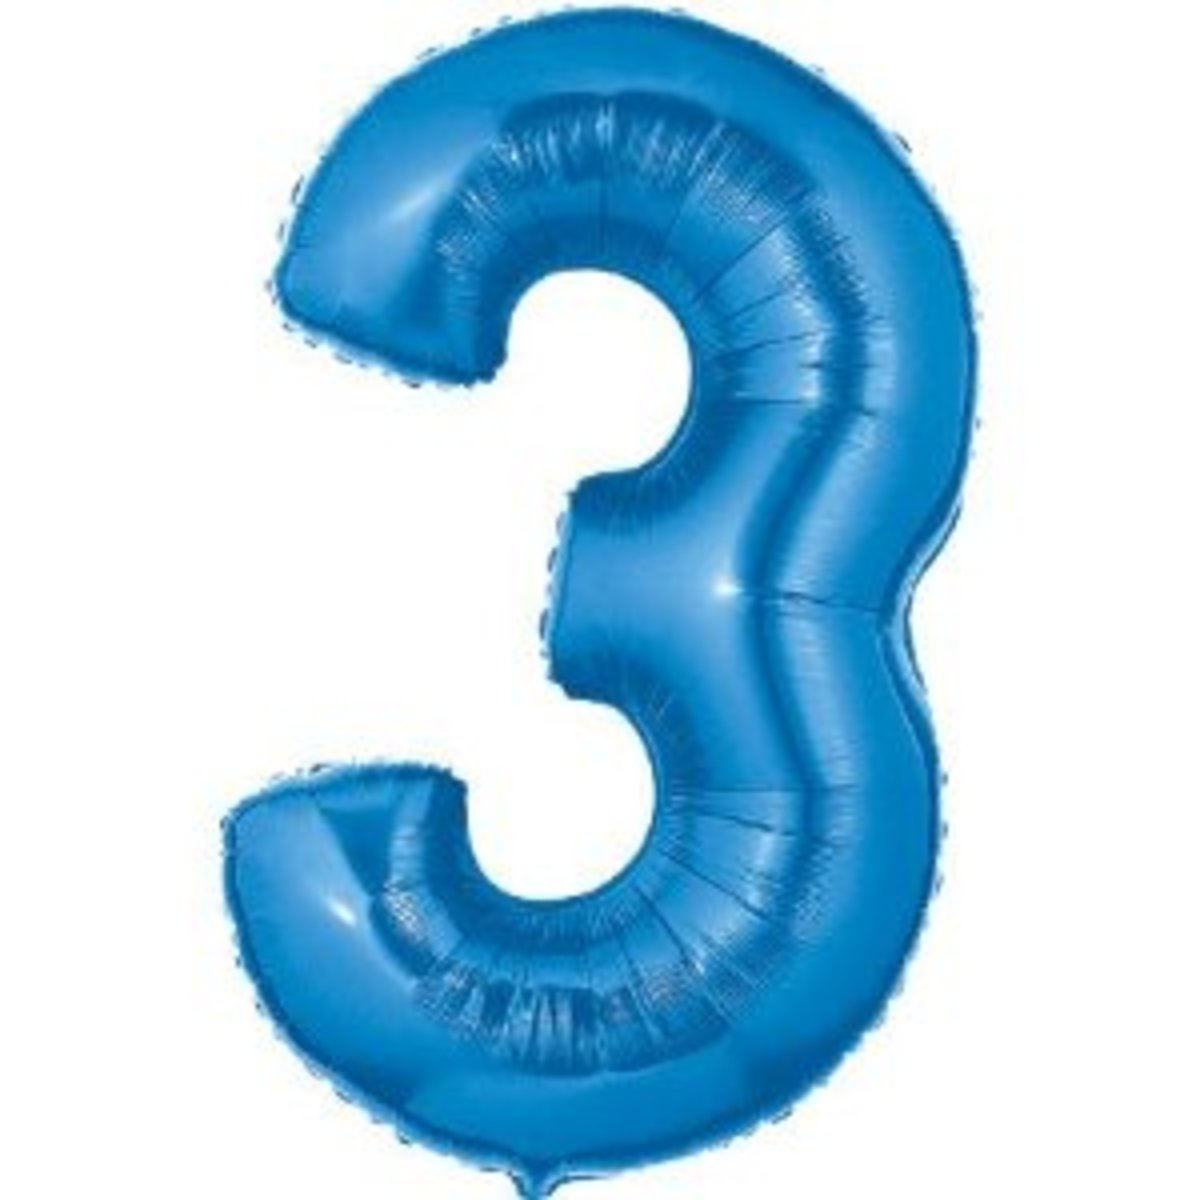 Number 3 Shaped Balloon